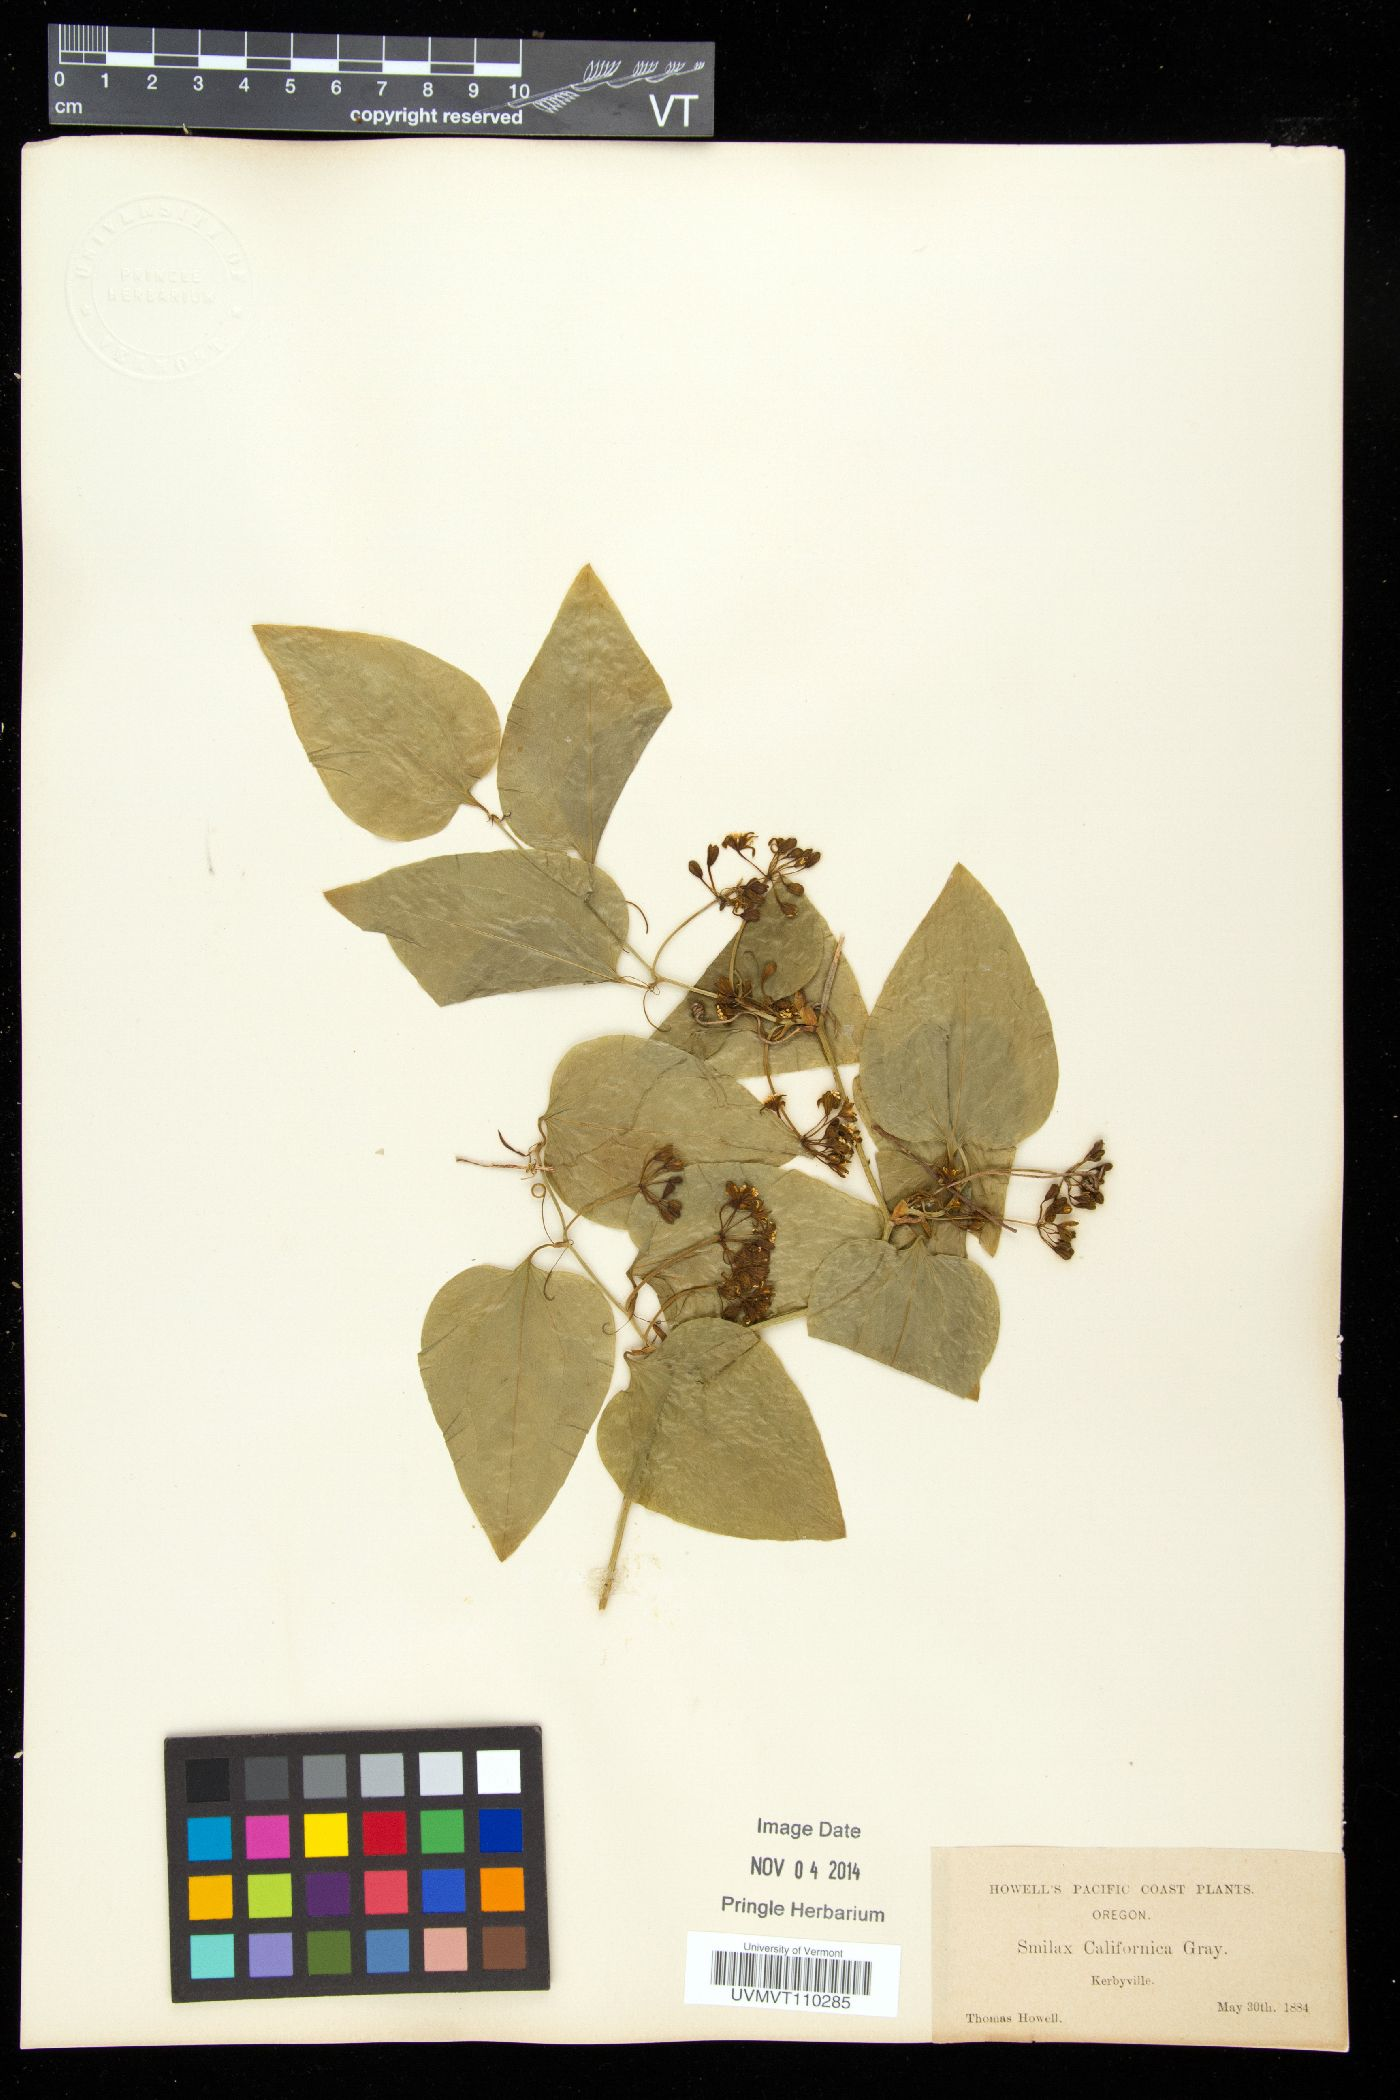 Smilax californica image